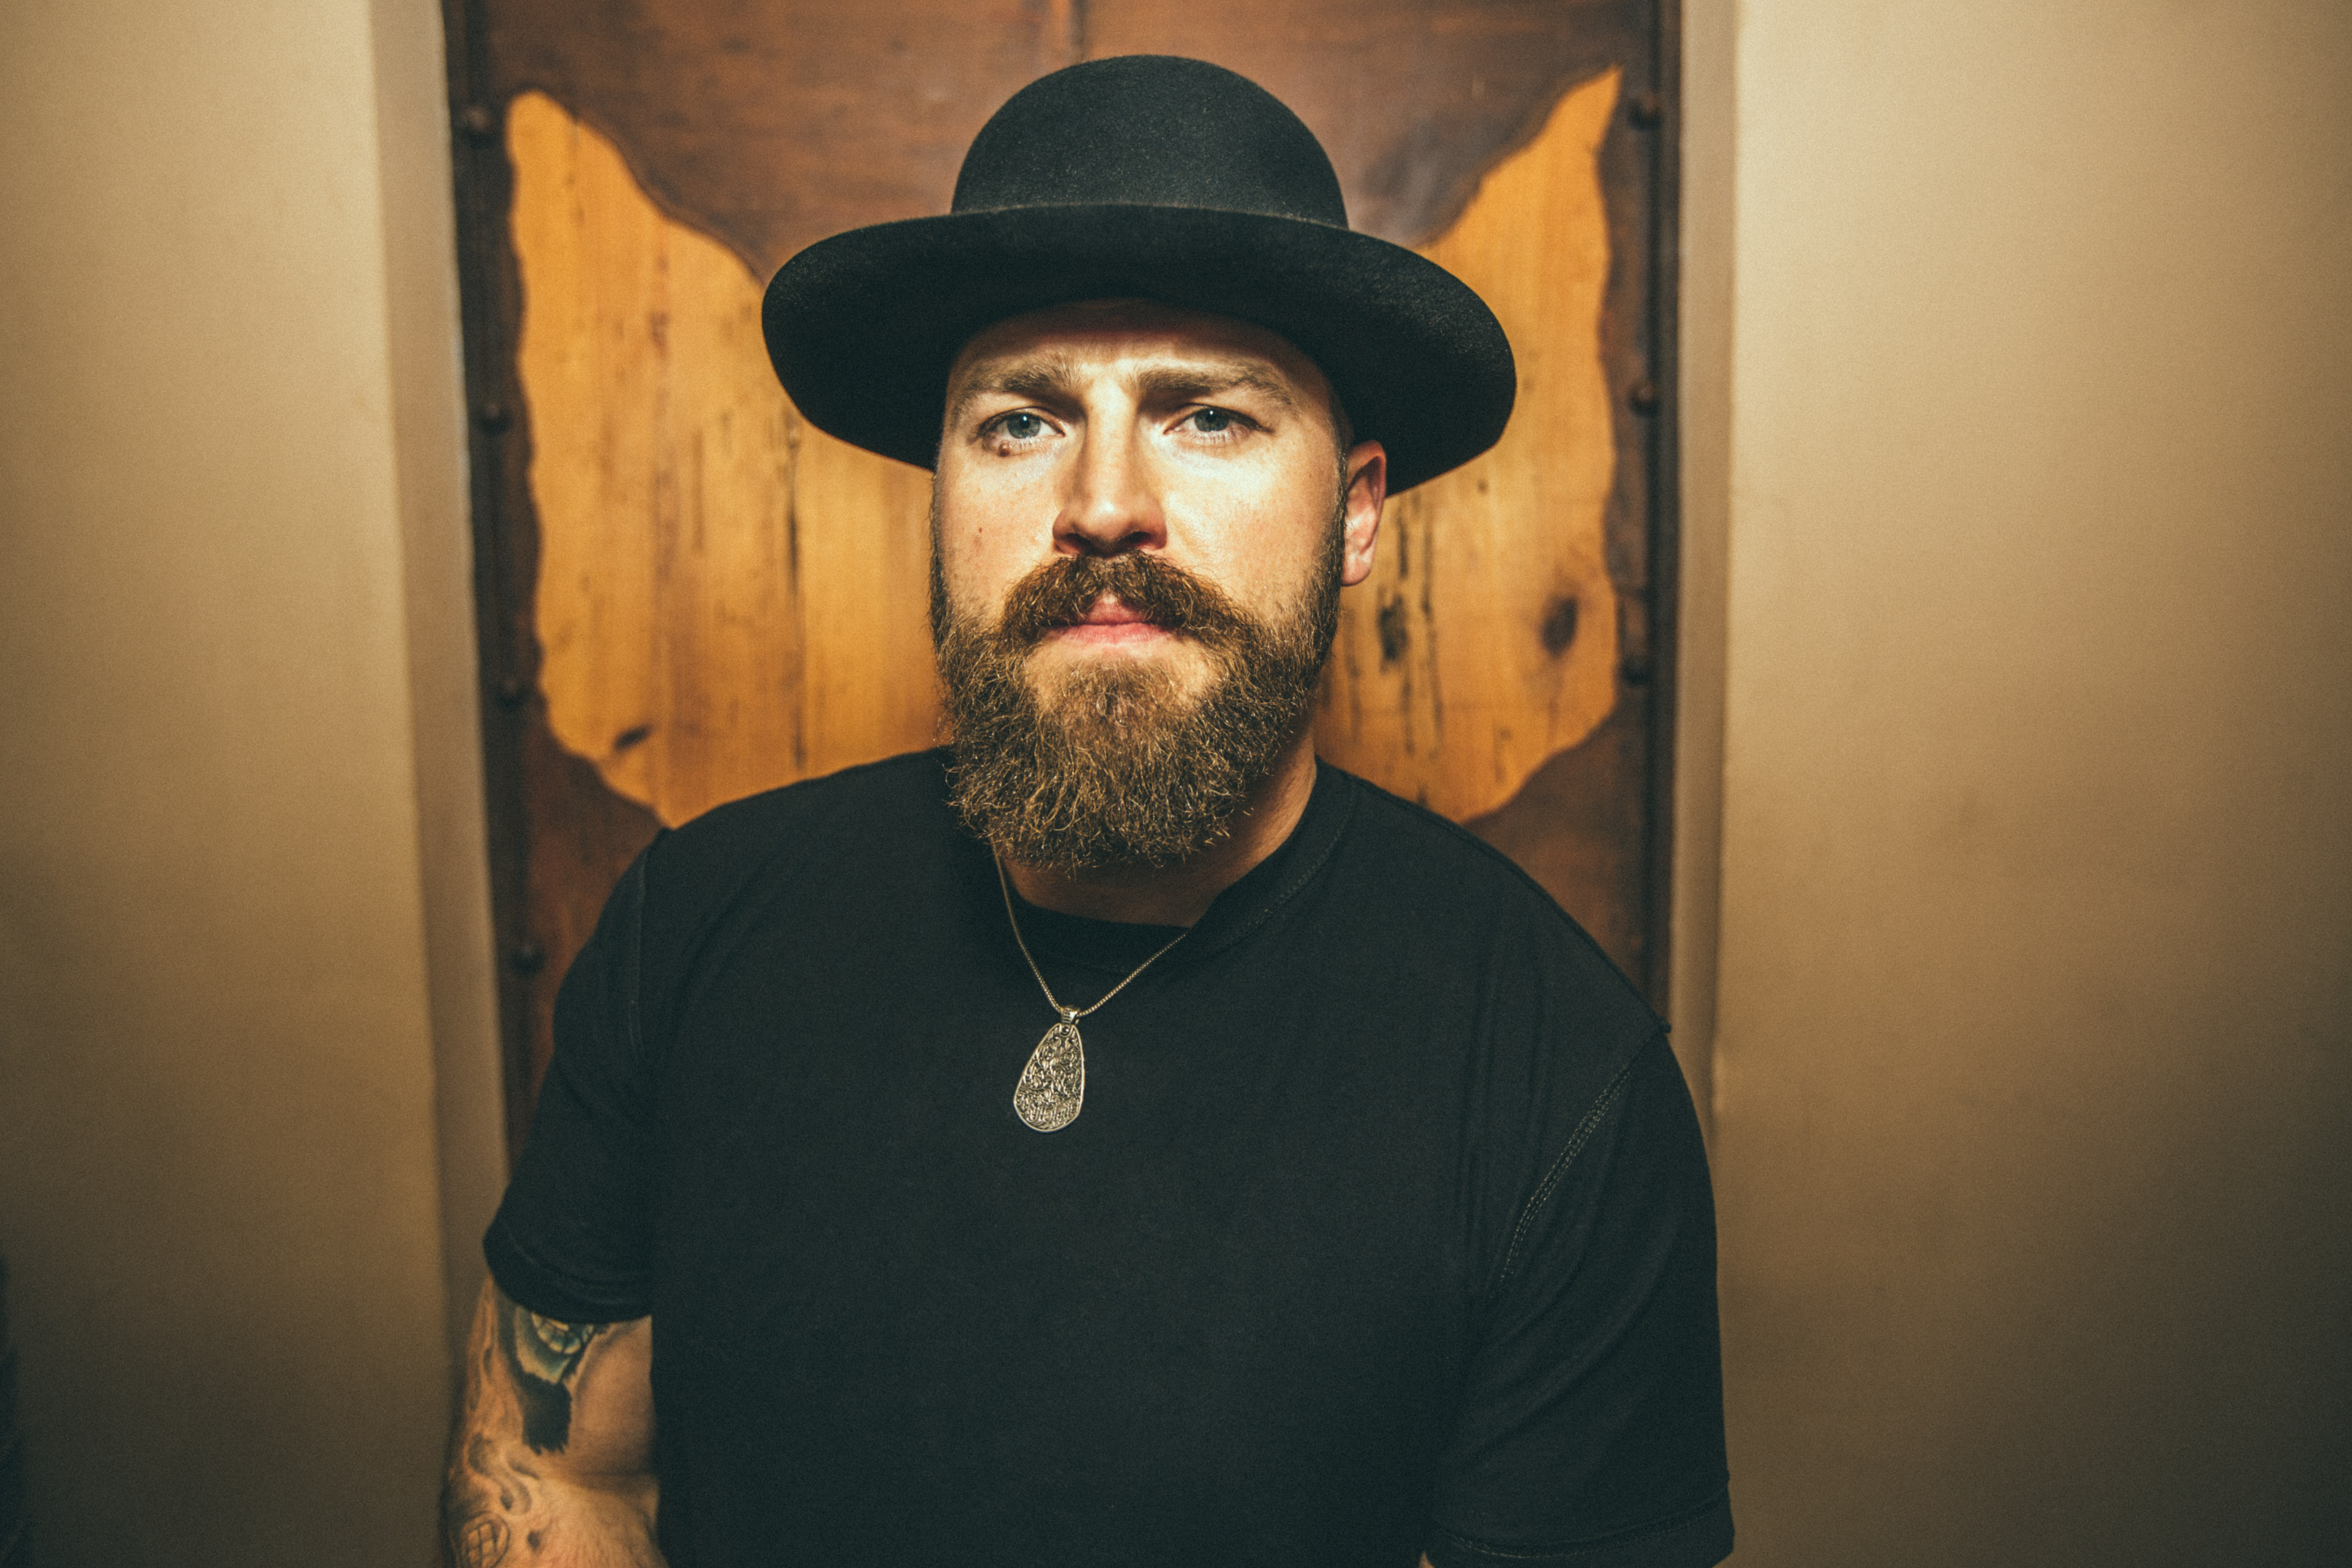 Zac Brown Caught In Hotel Room With Drugs And Strippers